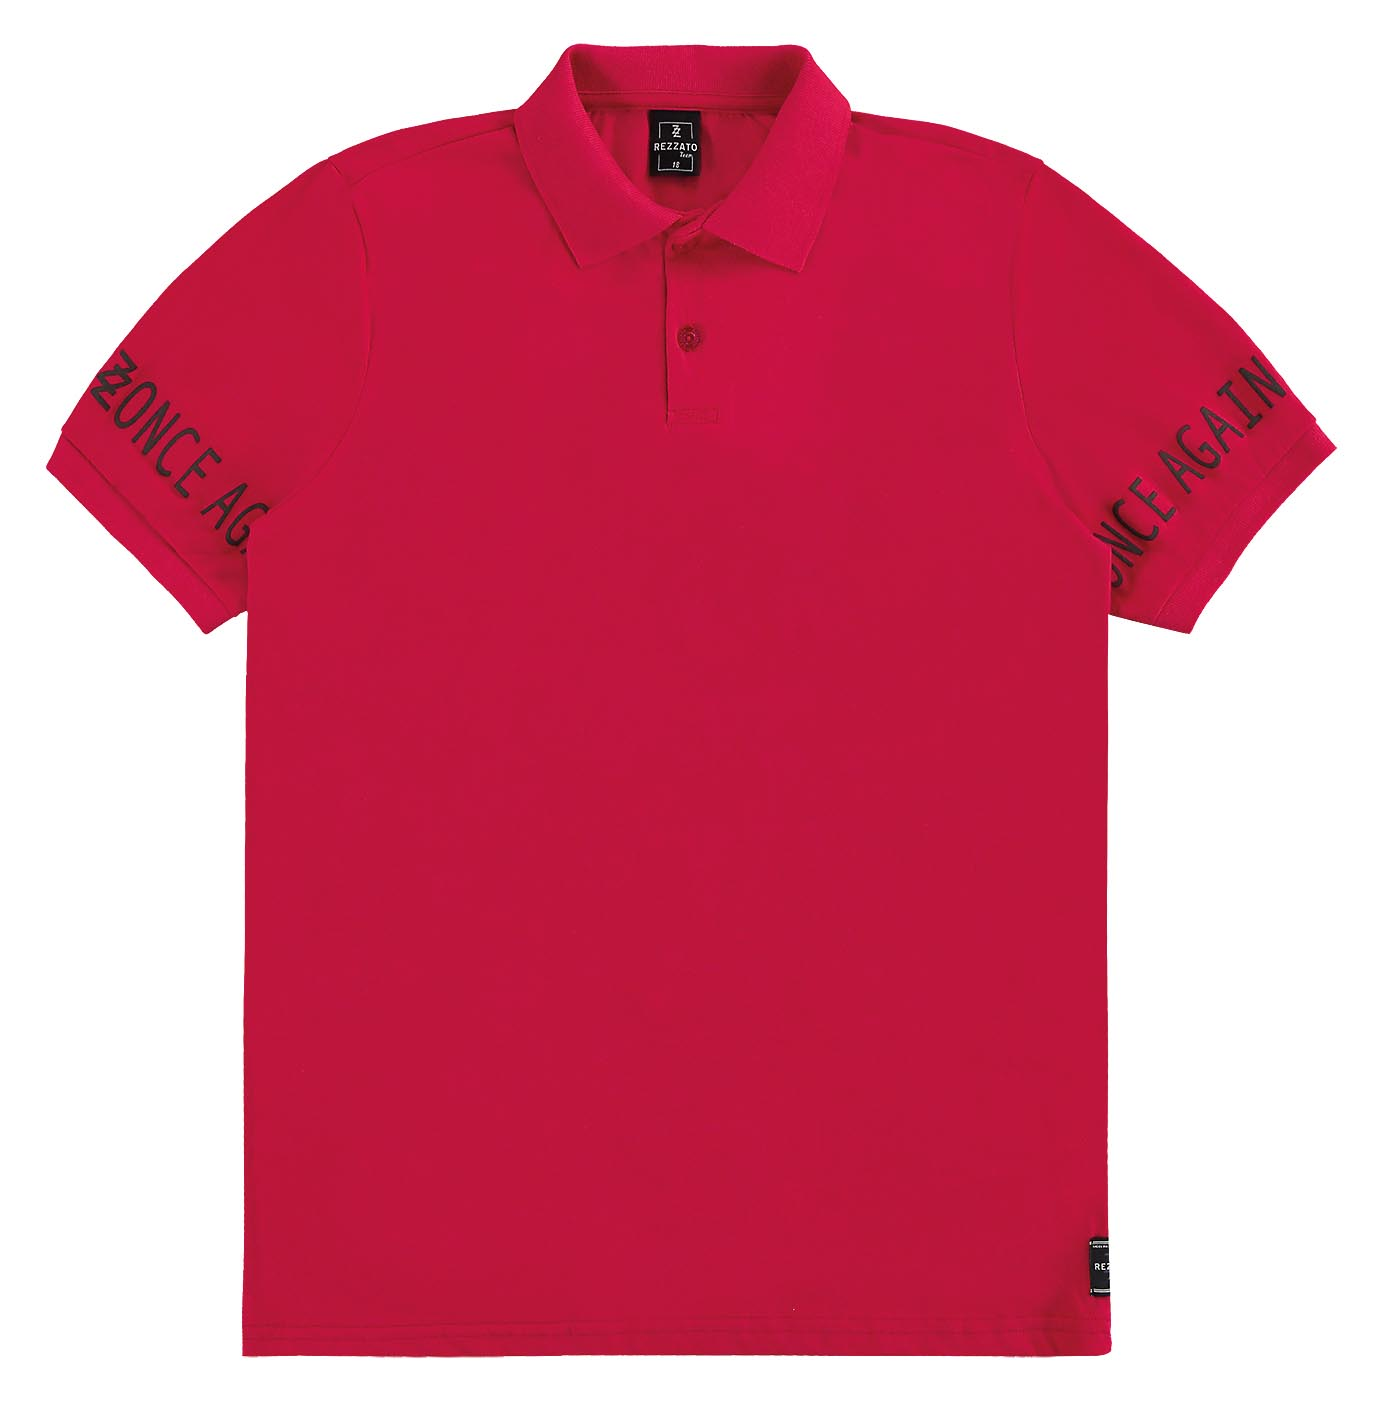 Camisa Polo Once Again - Rezzato